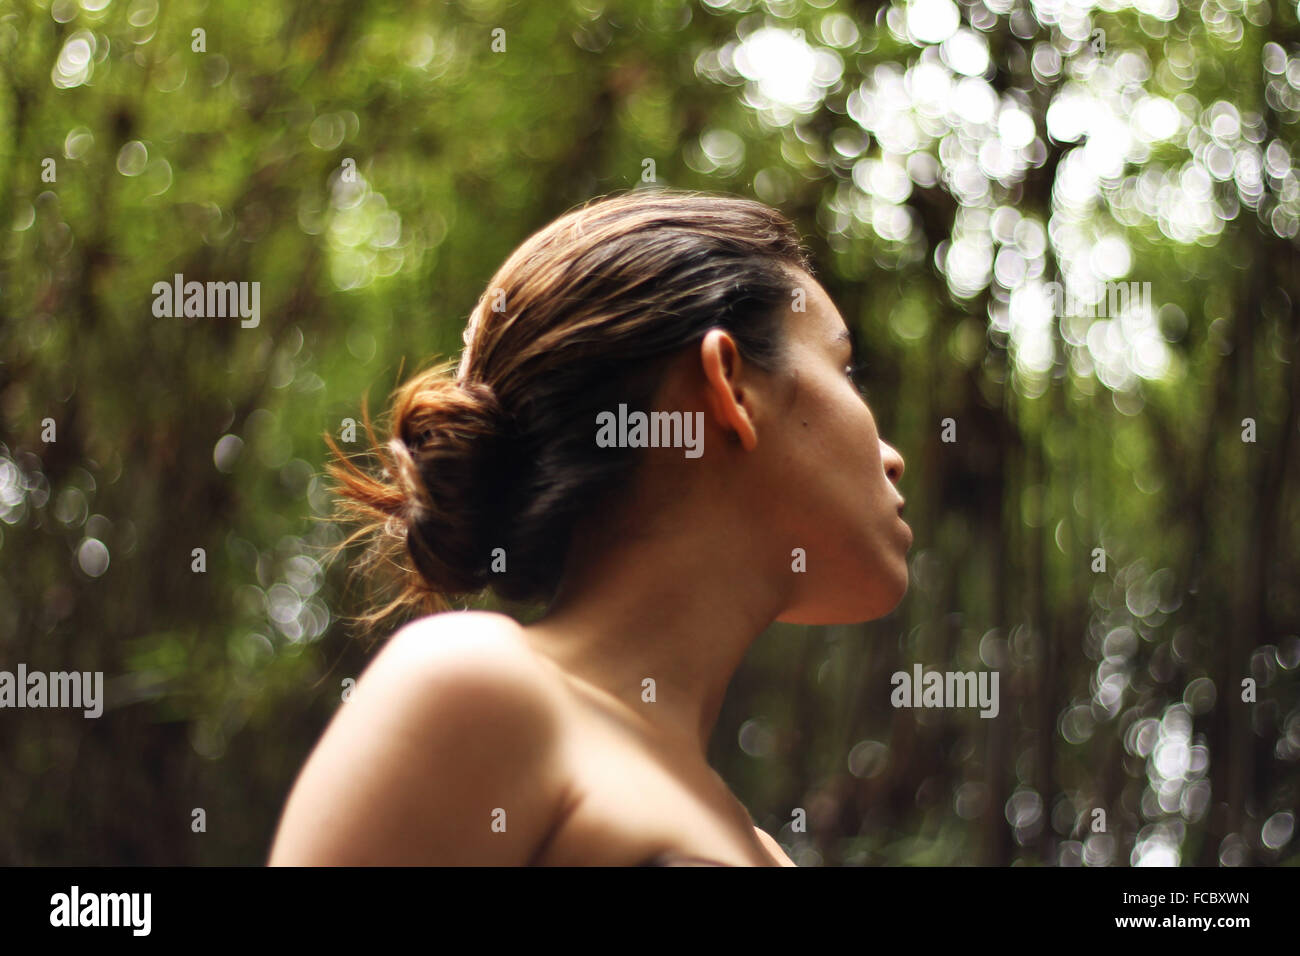 Close-Up Of Young Woman Looking Away - Stock Image